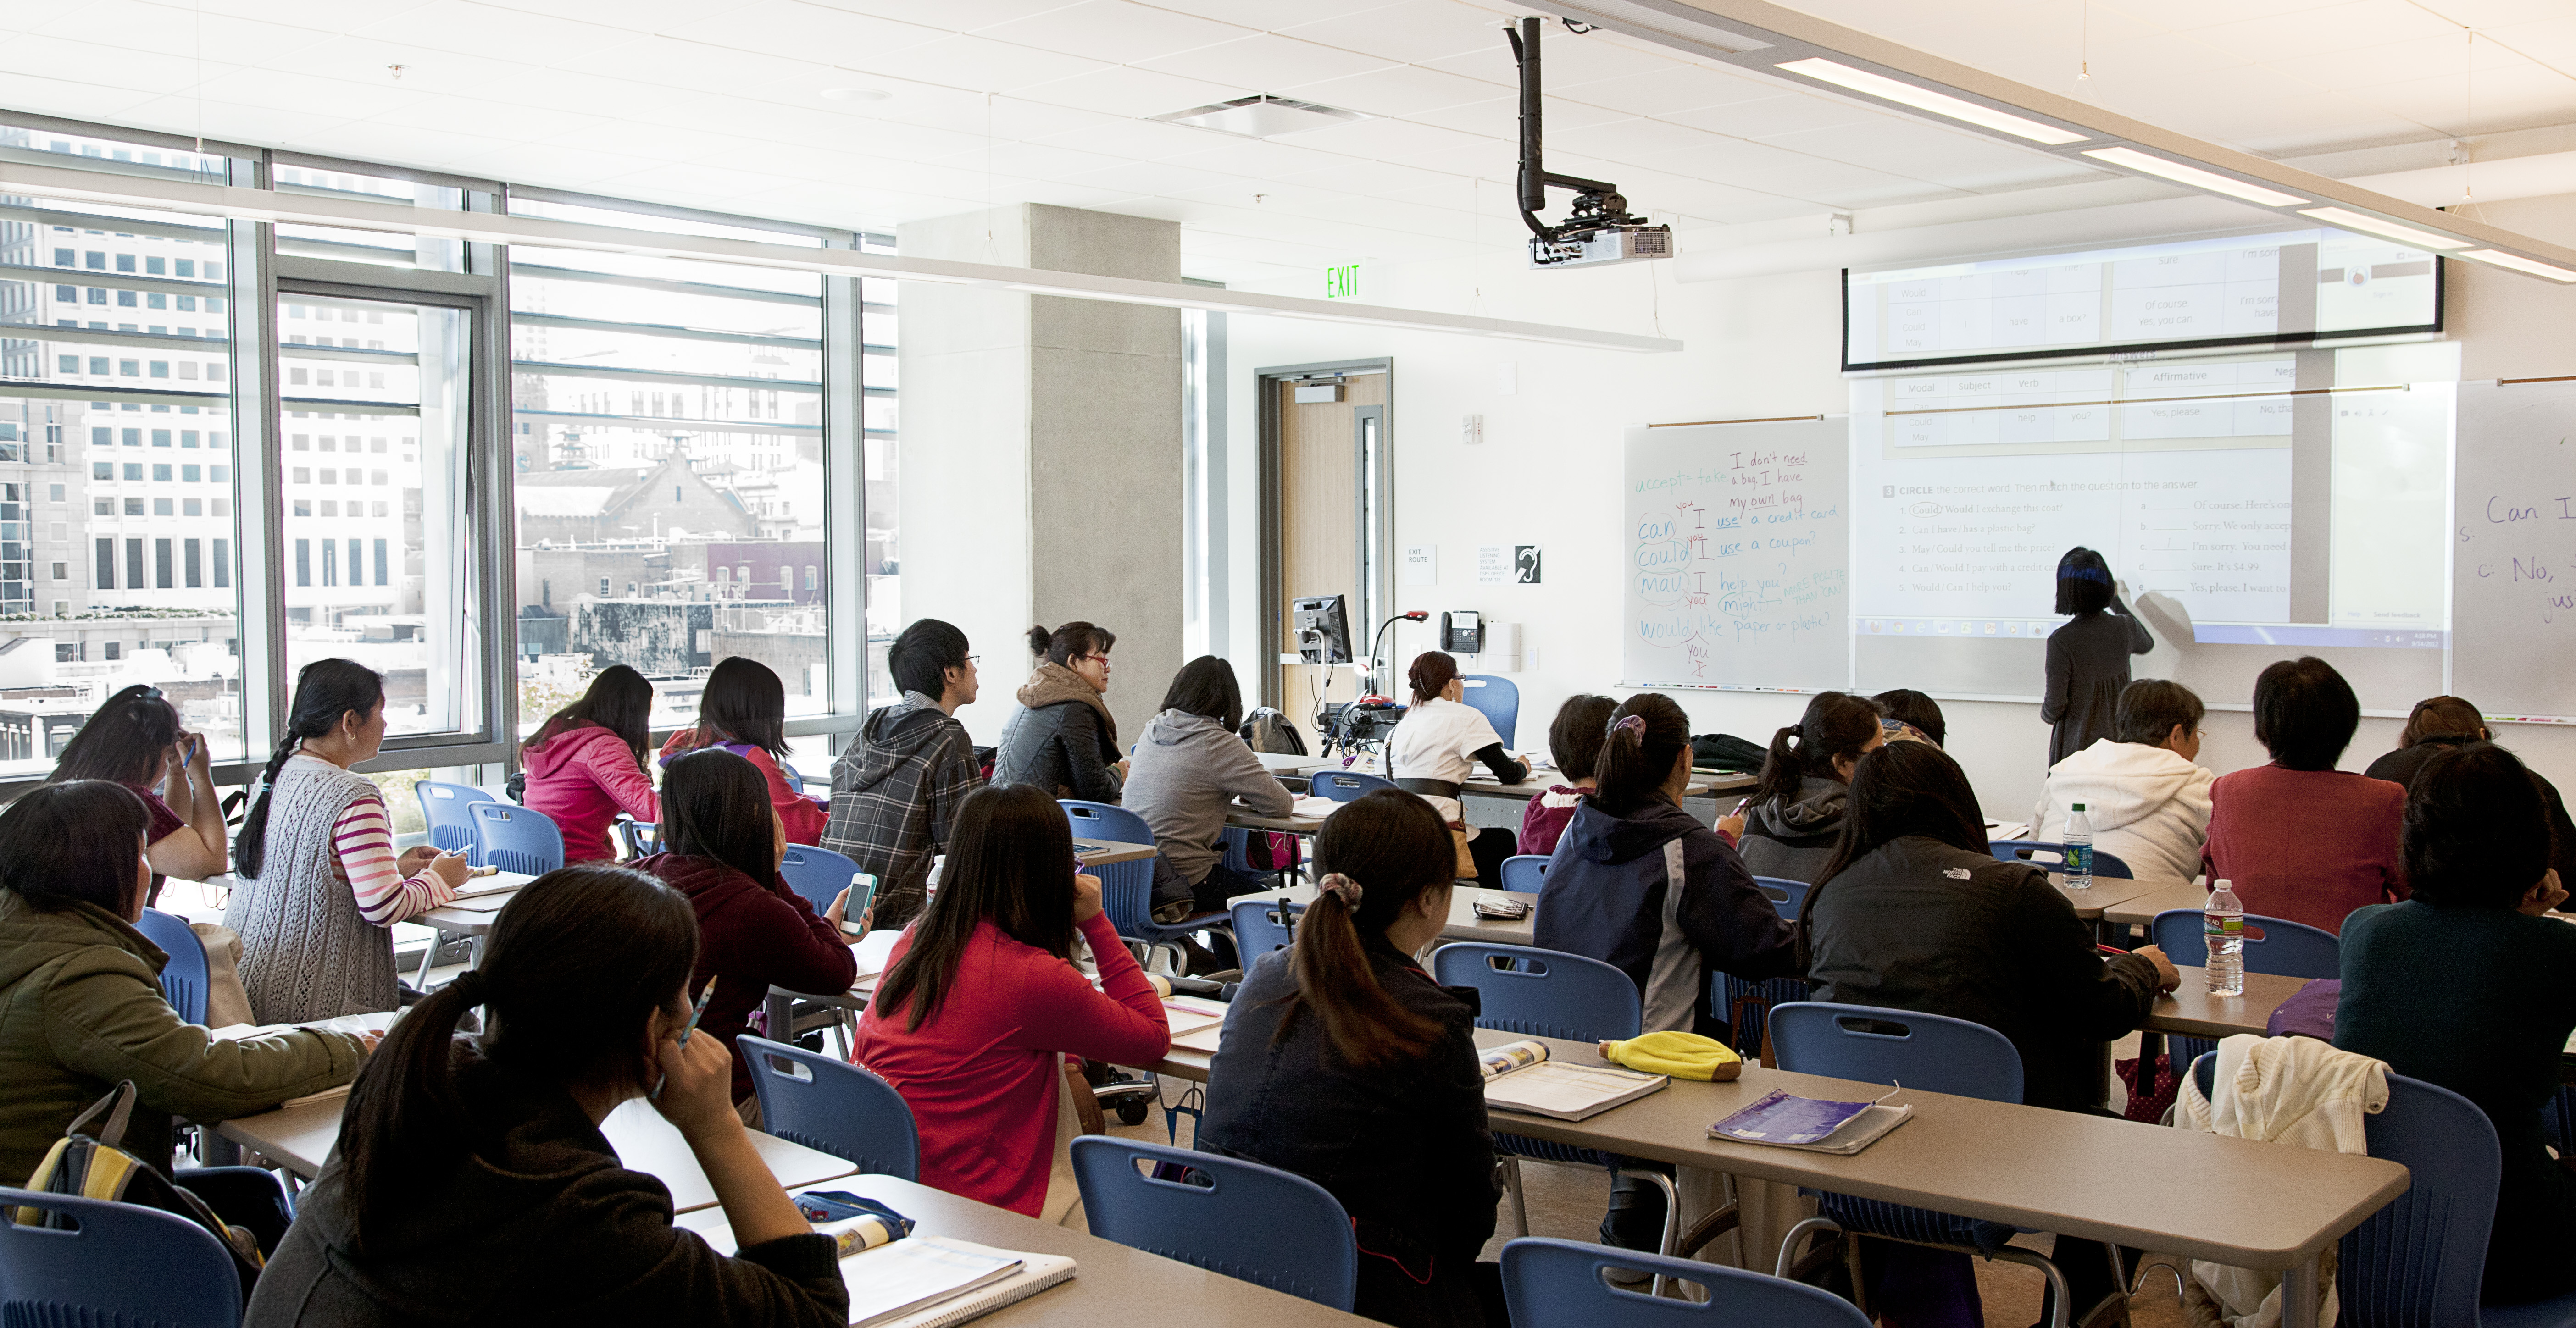 City College Will Offer Free Tuition Next Semester – San With Regard To What Dates Is The Fall Semester Start And End At City College Of San Francisco